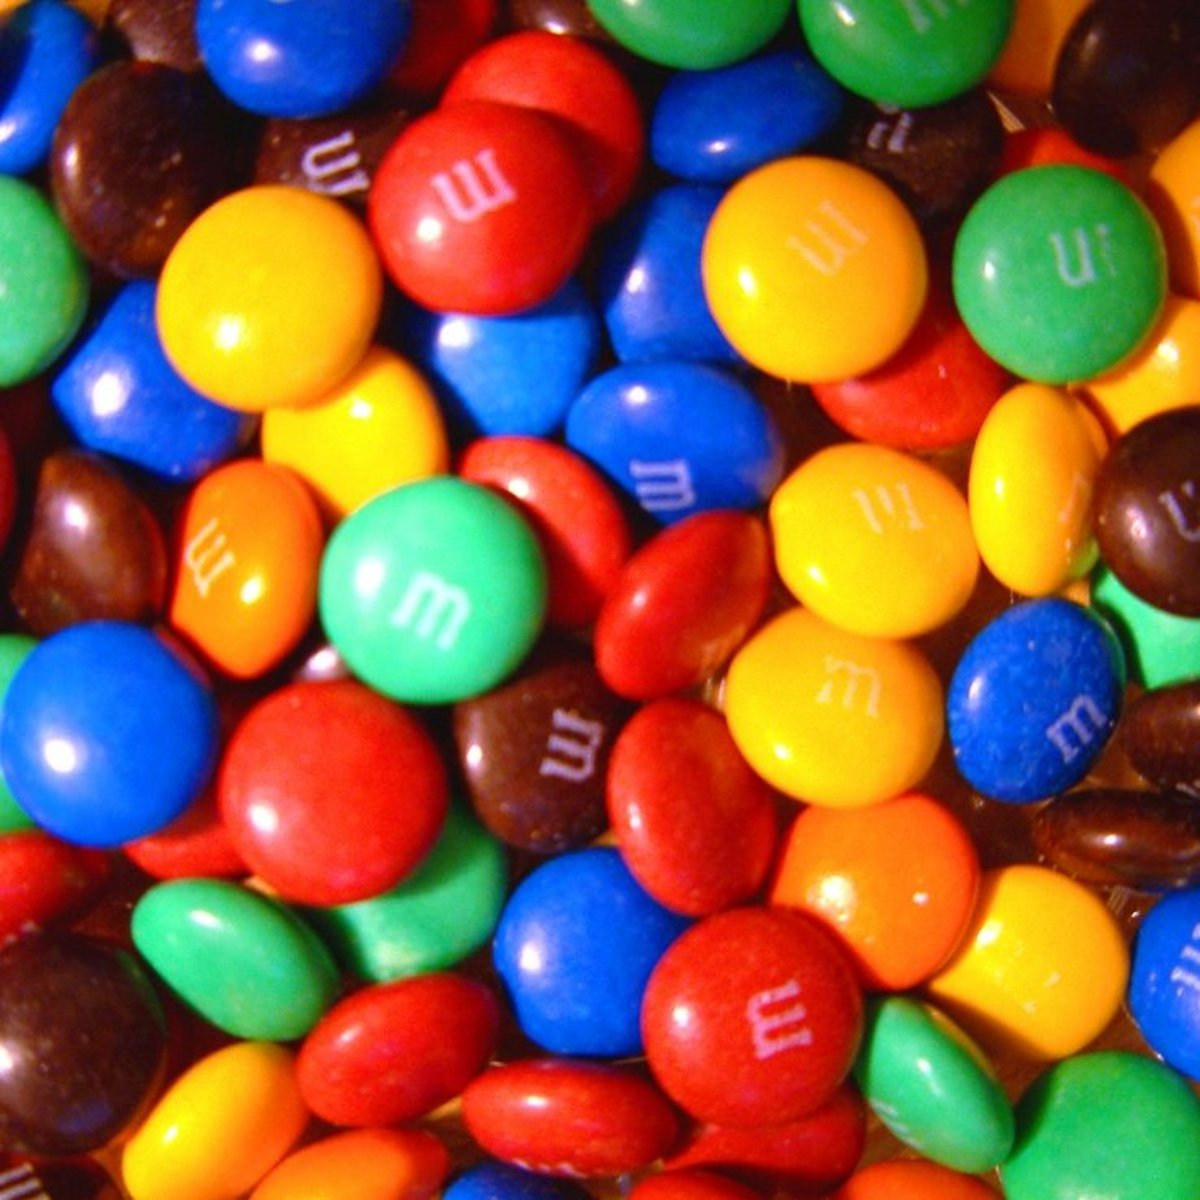 A delicious pile of M&M's.